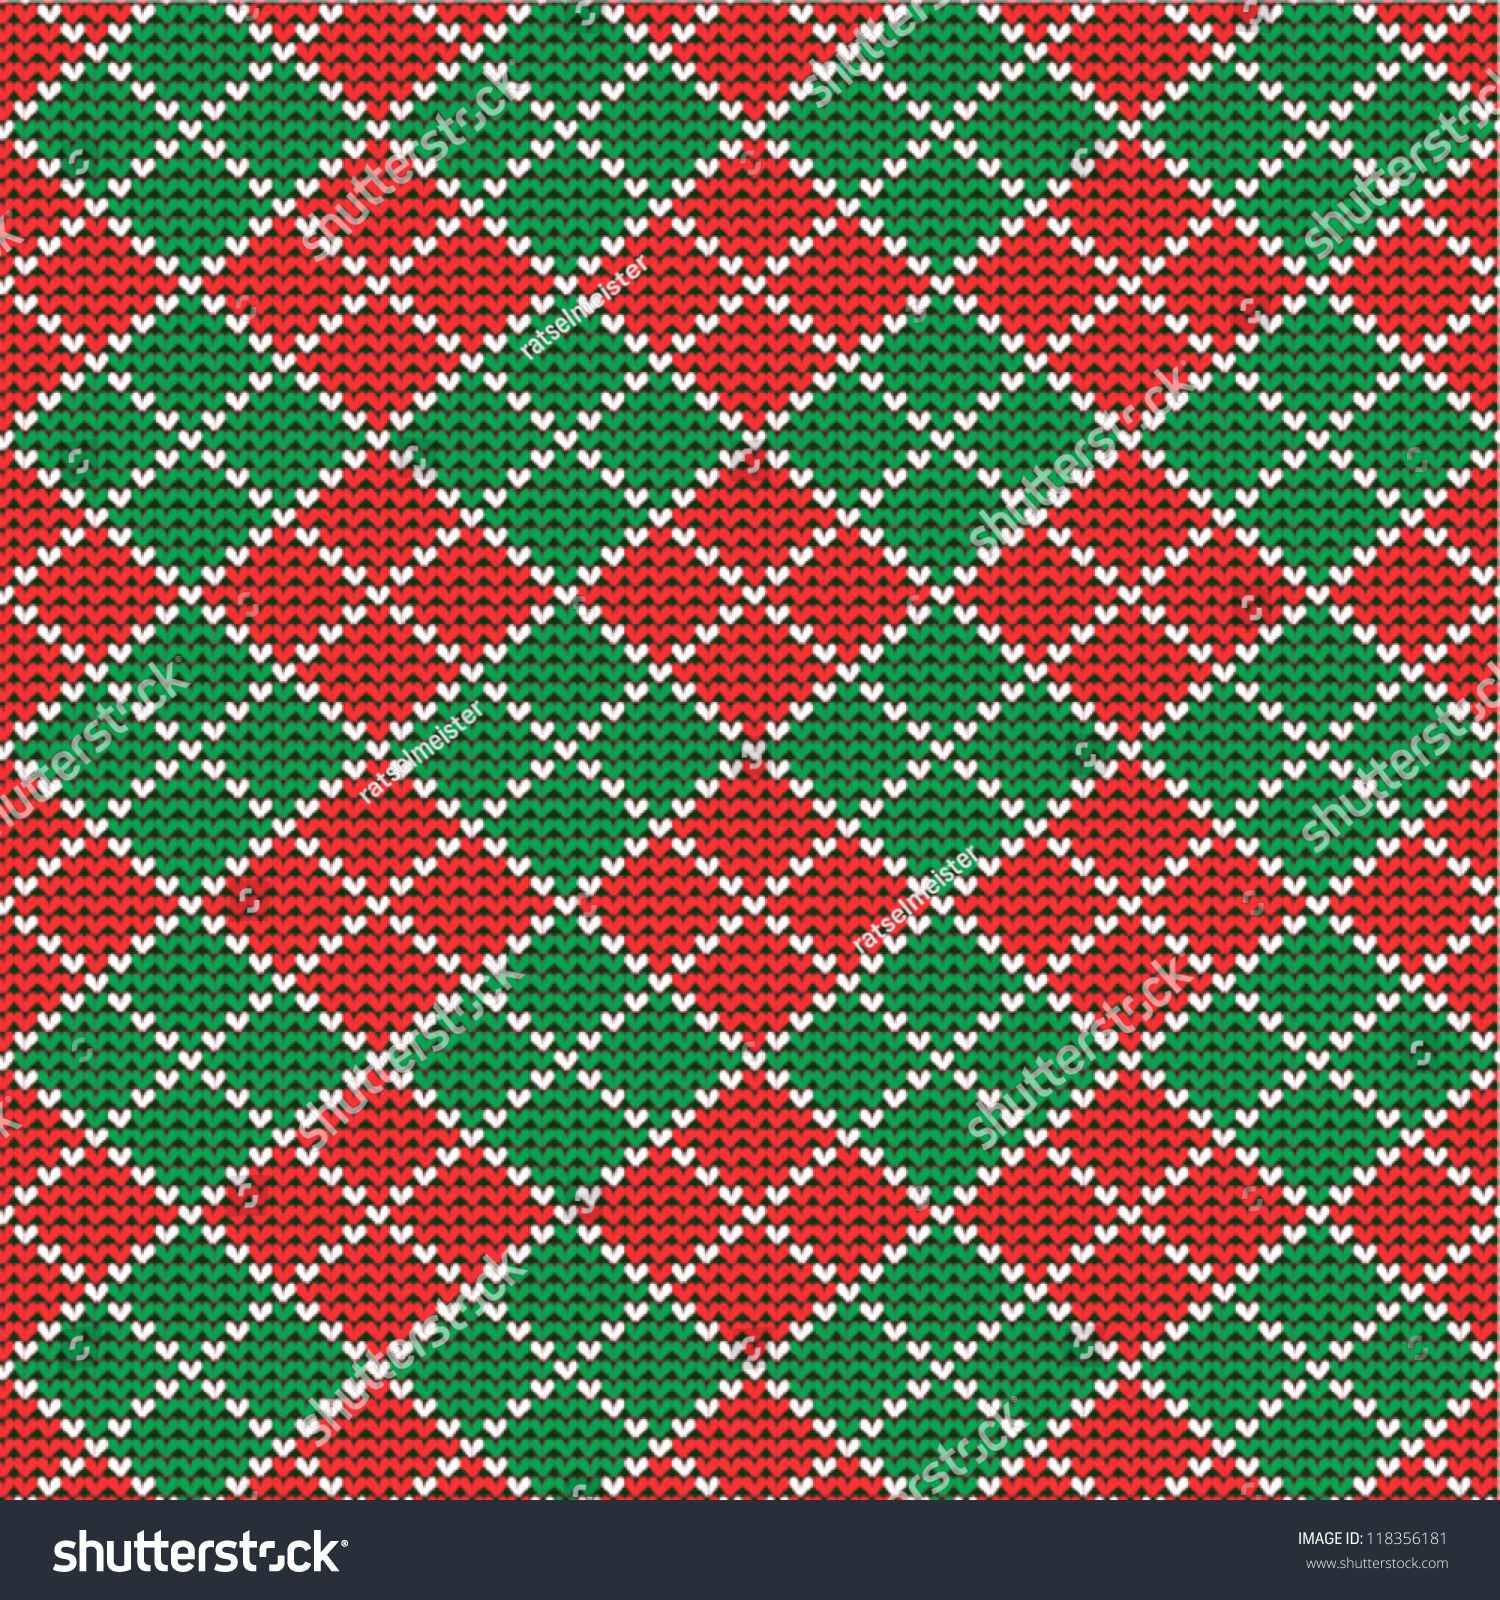 Pics photos merry christmas argyle twitter backgrounds - Knitted Red And Green Christmas Argyle Background Plus Seamless Pattern Included In Swatch Palette